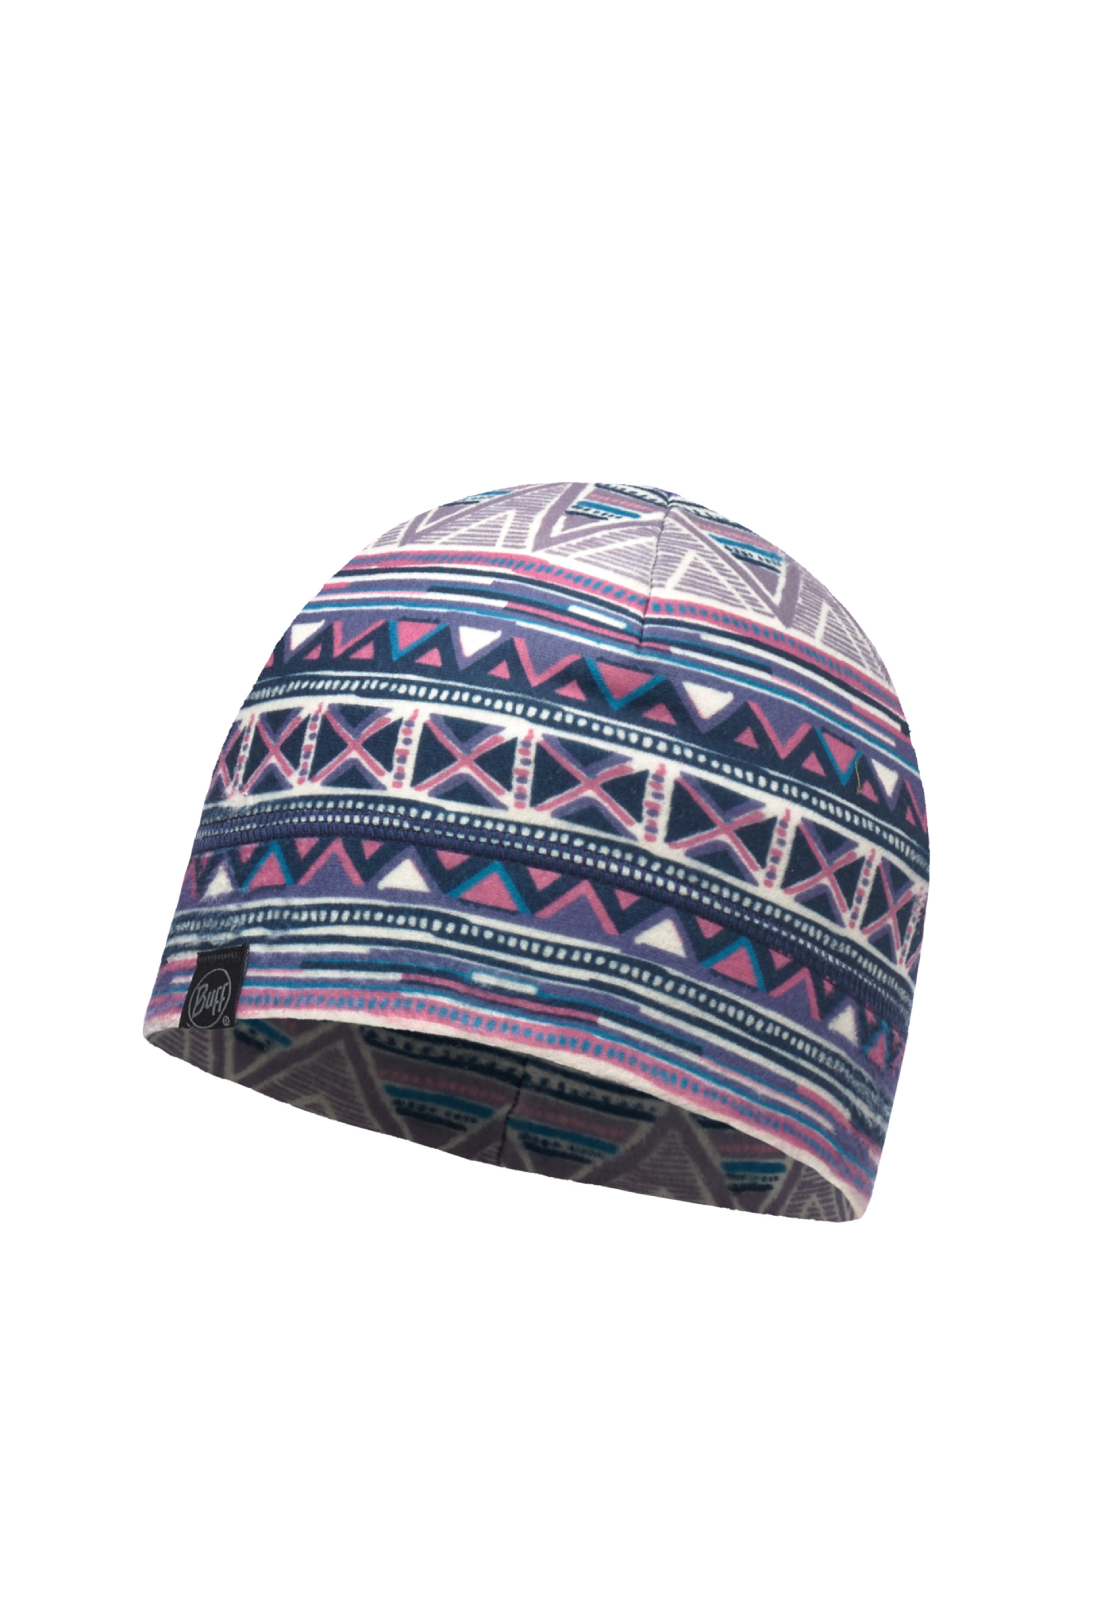 Polar Hat Jr & Child Tanok Multi / Cru